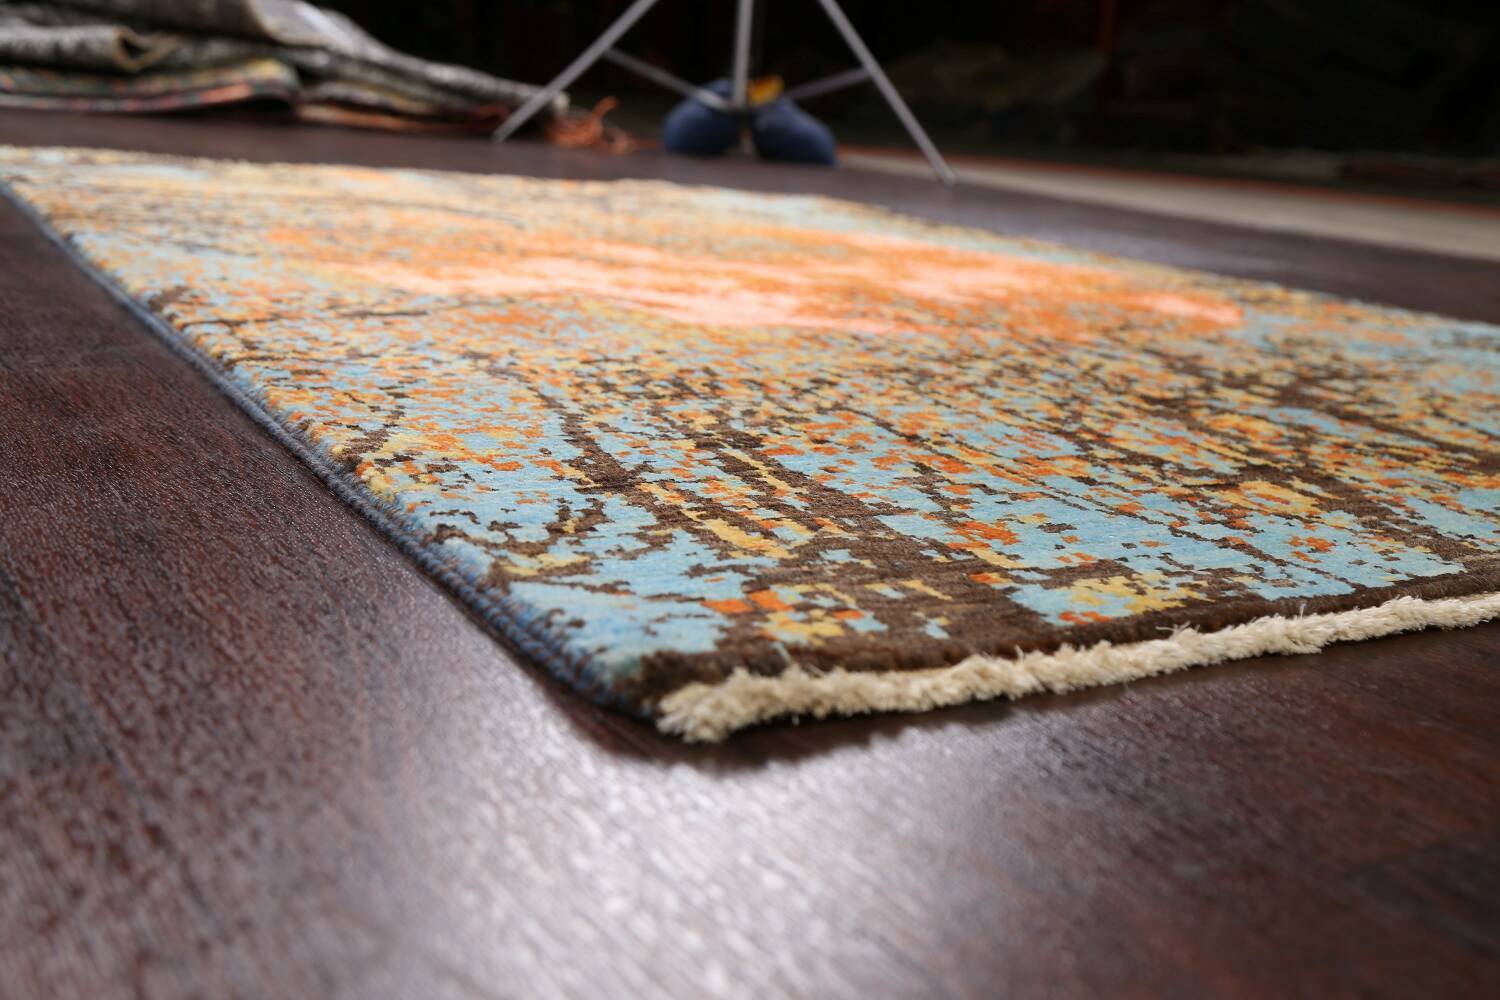 Vegetable Dye Contemporary Abstract Oriental Area Rug 4x6 image 6